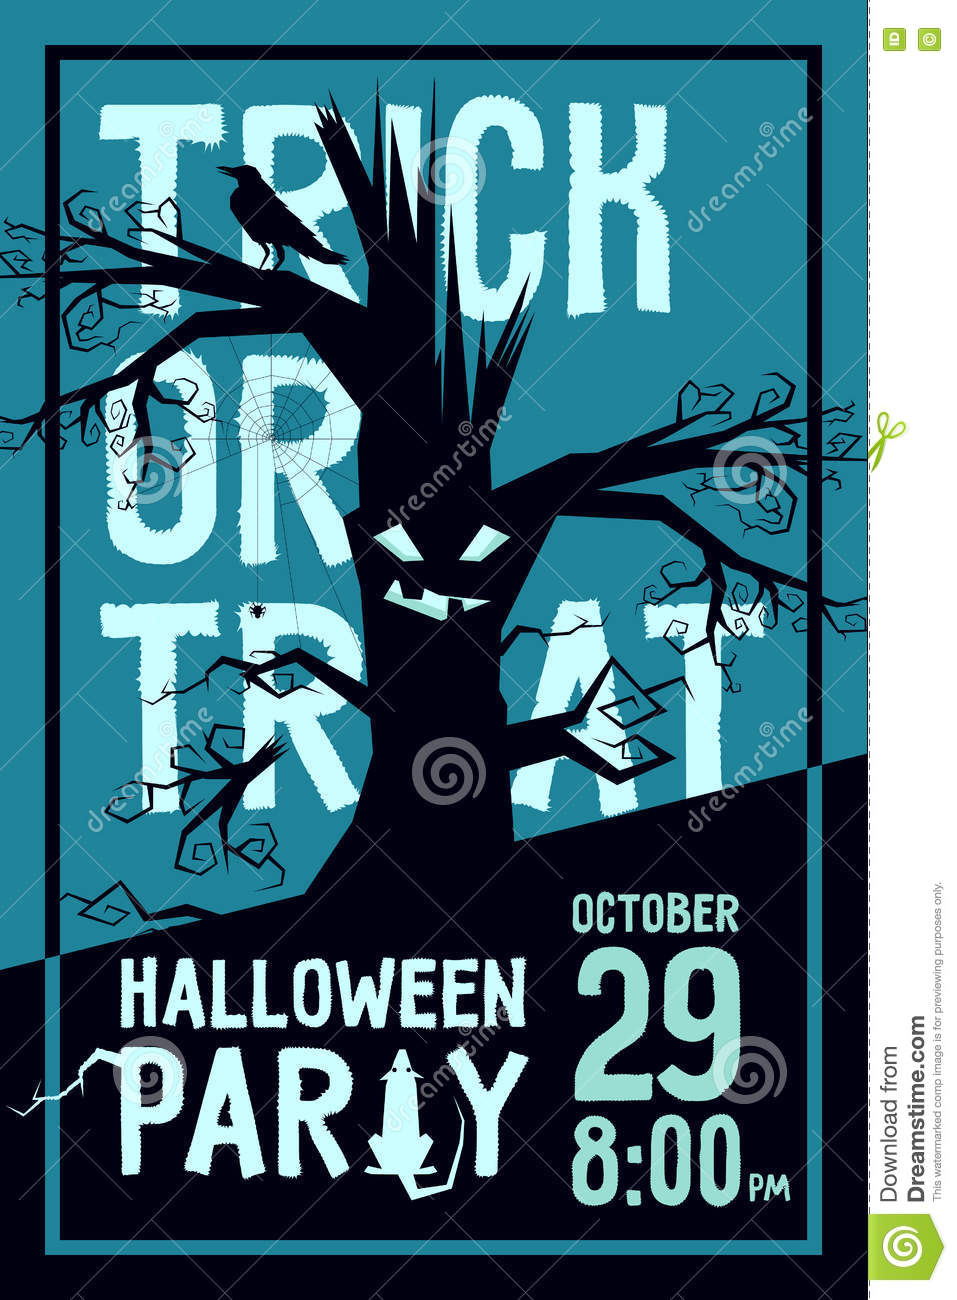 Raven Halloween Party Stock Vector - Image: 73877217